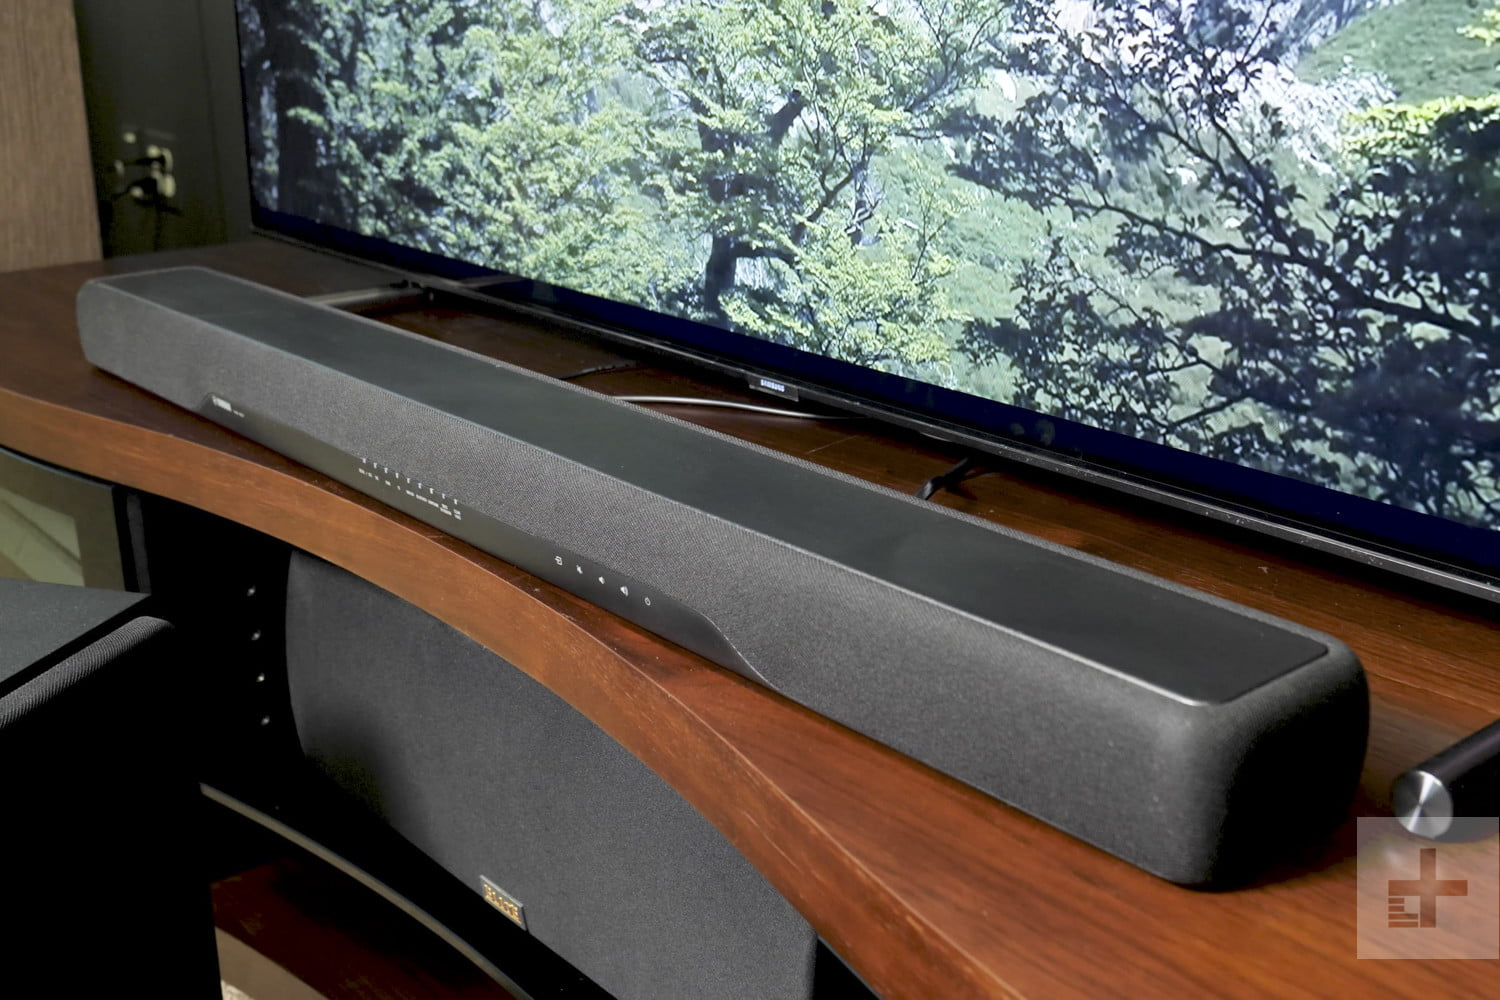 These early Black Friday soundbar deals on Amazon save you as much as $173